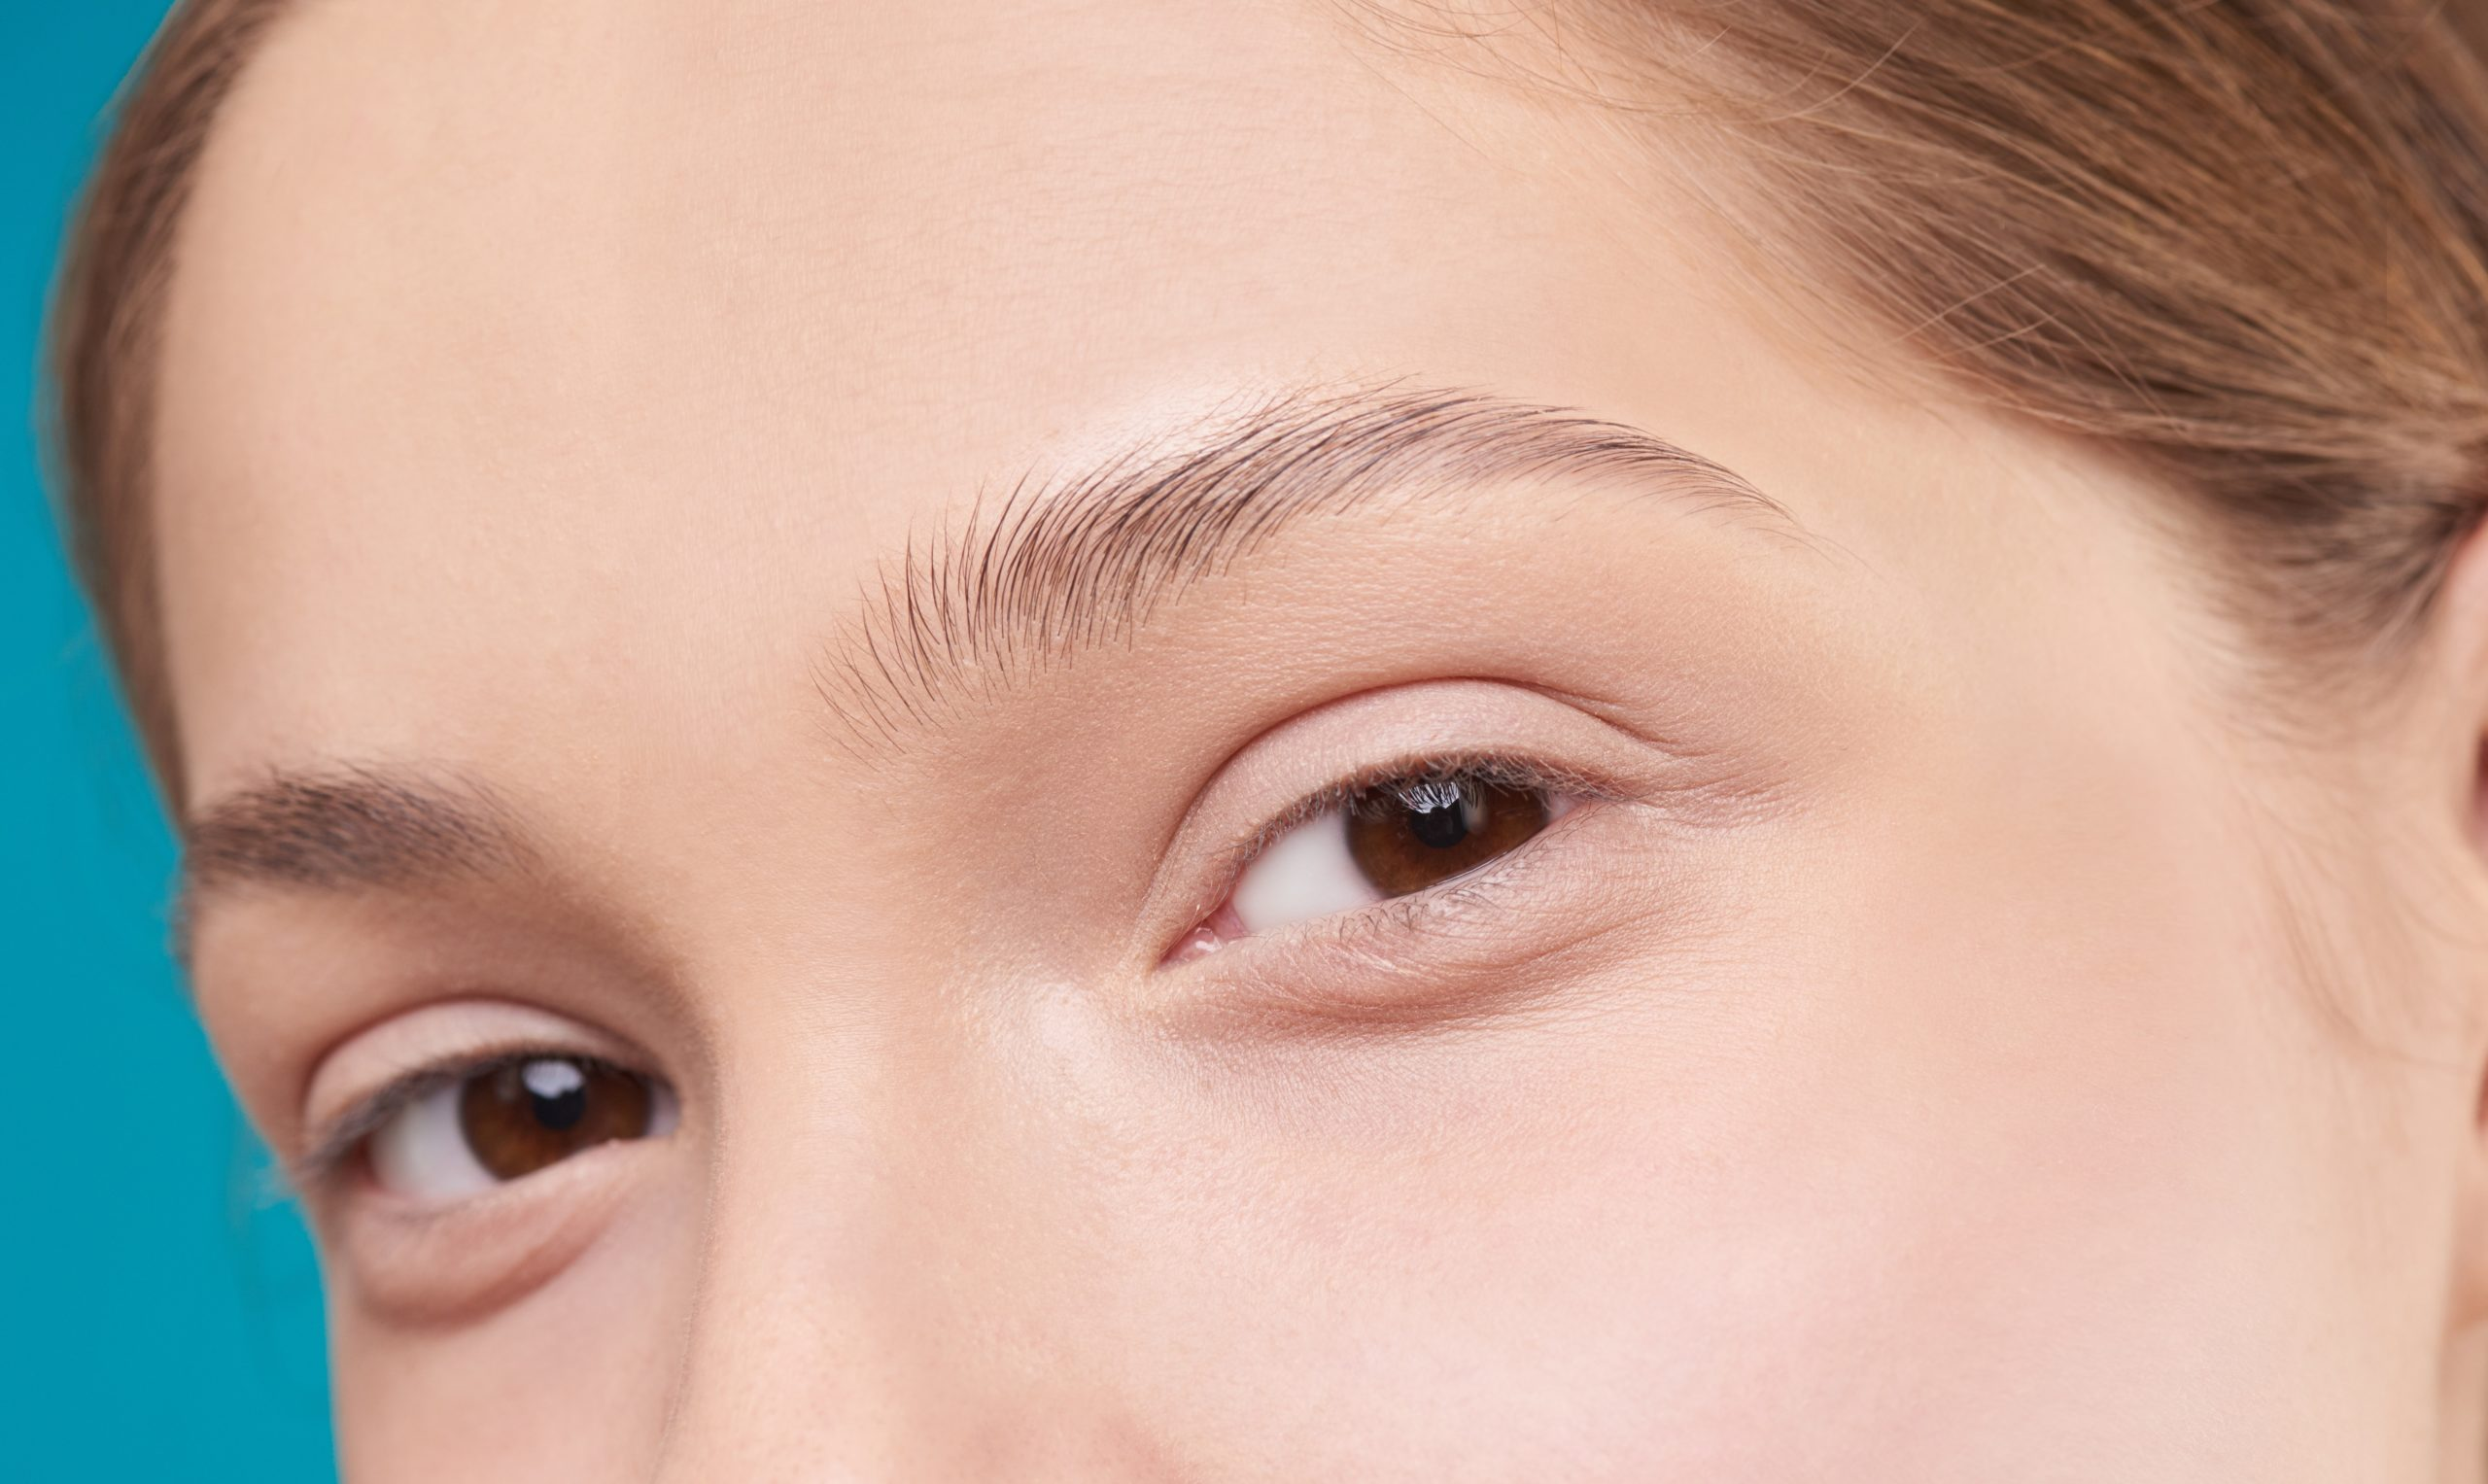 5 Glossier Brow Flick Dupes for Full Brows in 2021